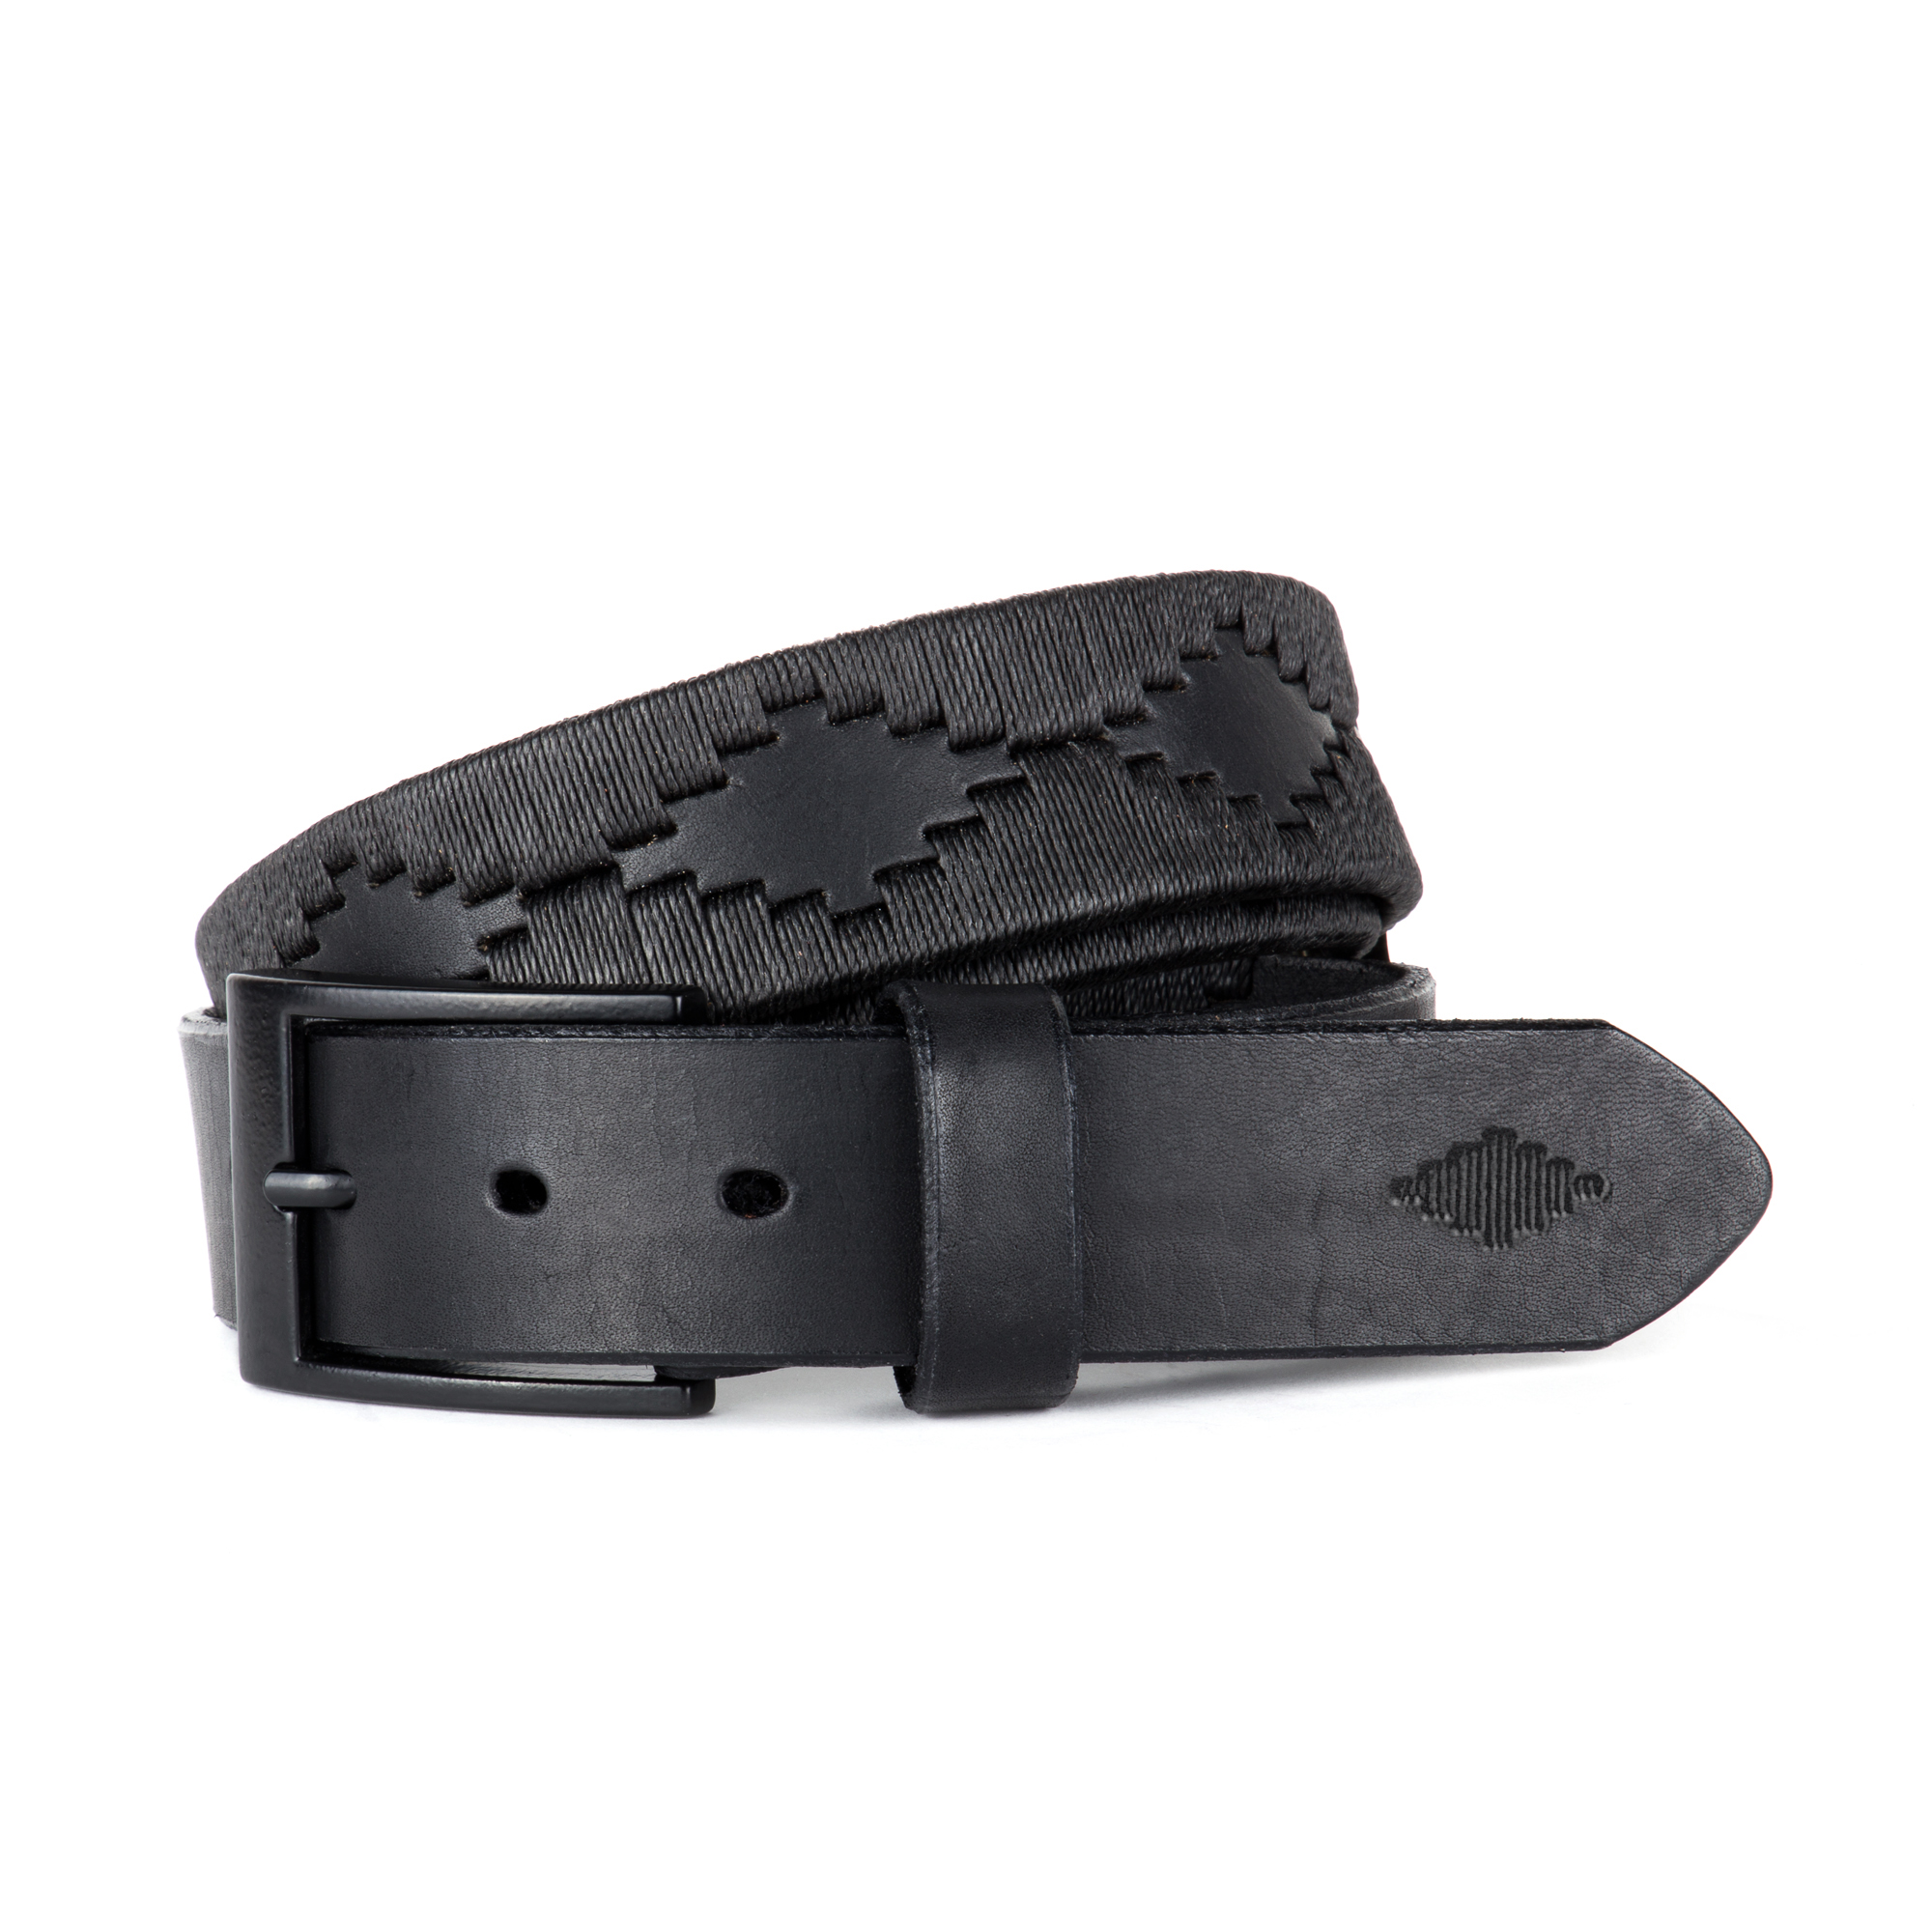 pampeano - Black Label Edition Polo Belt